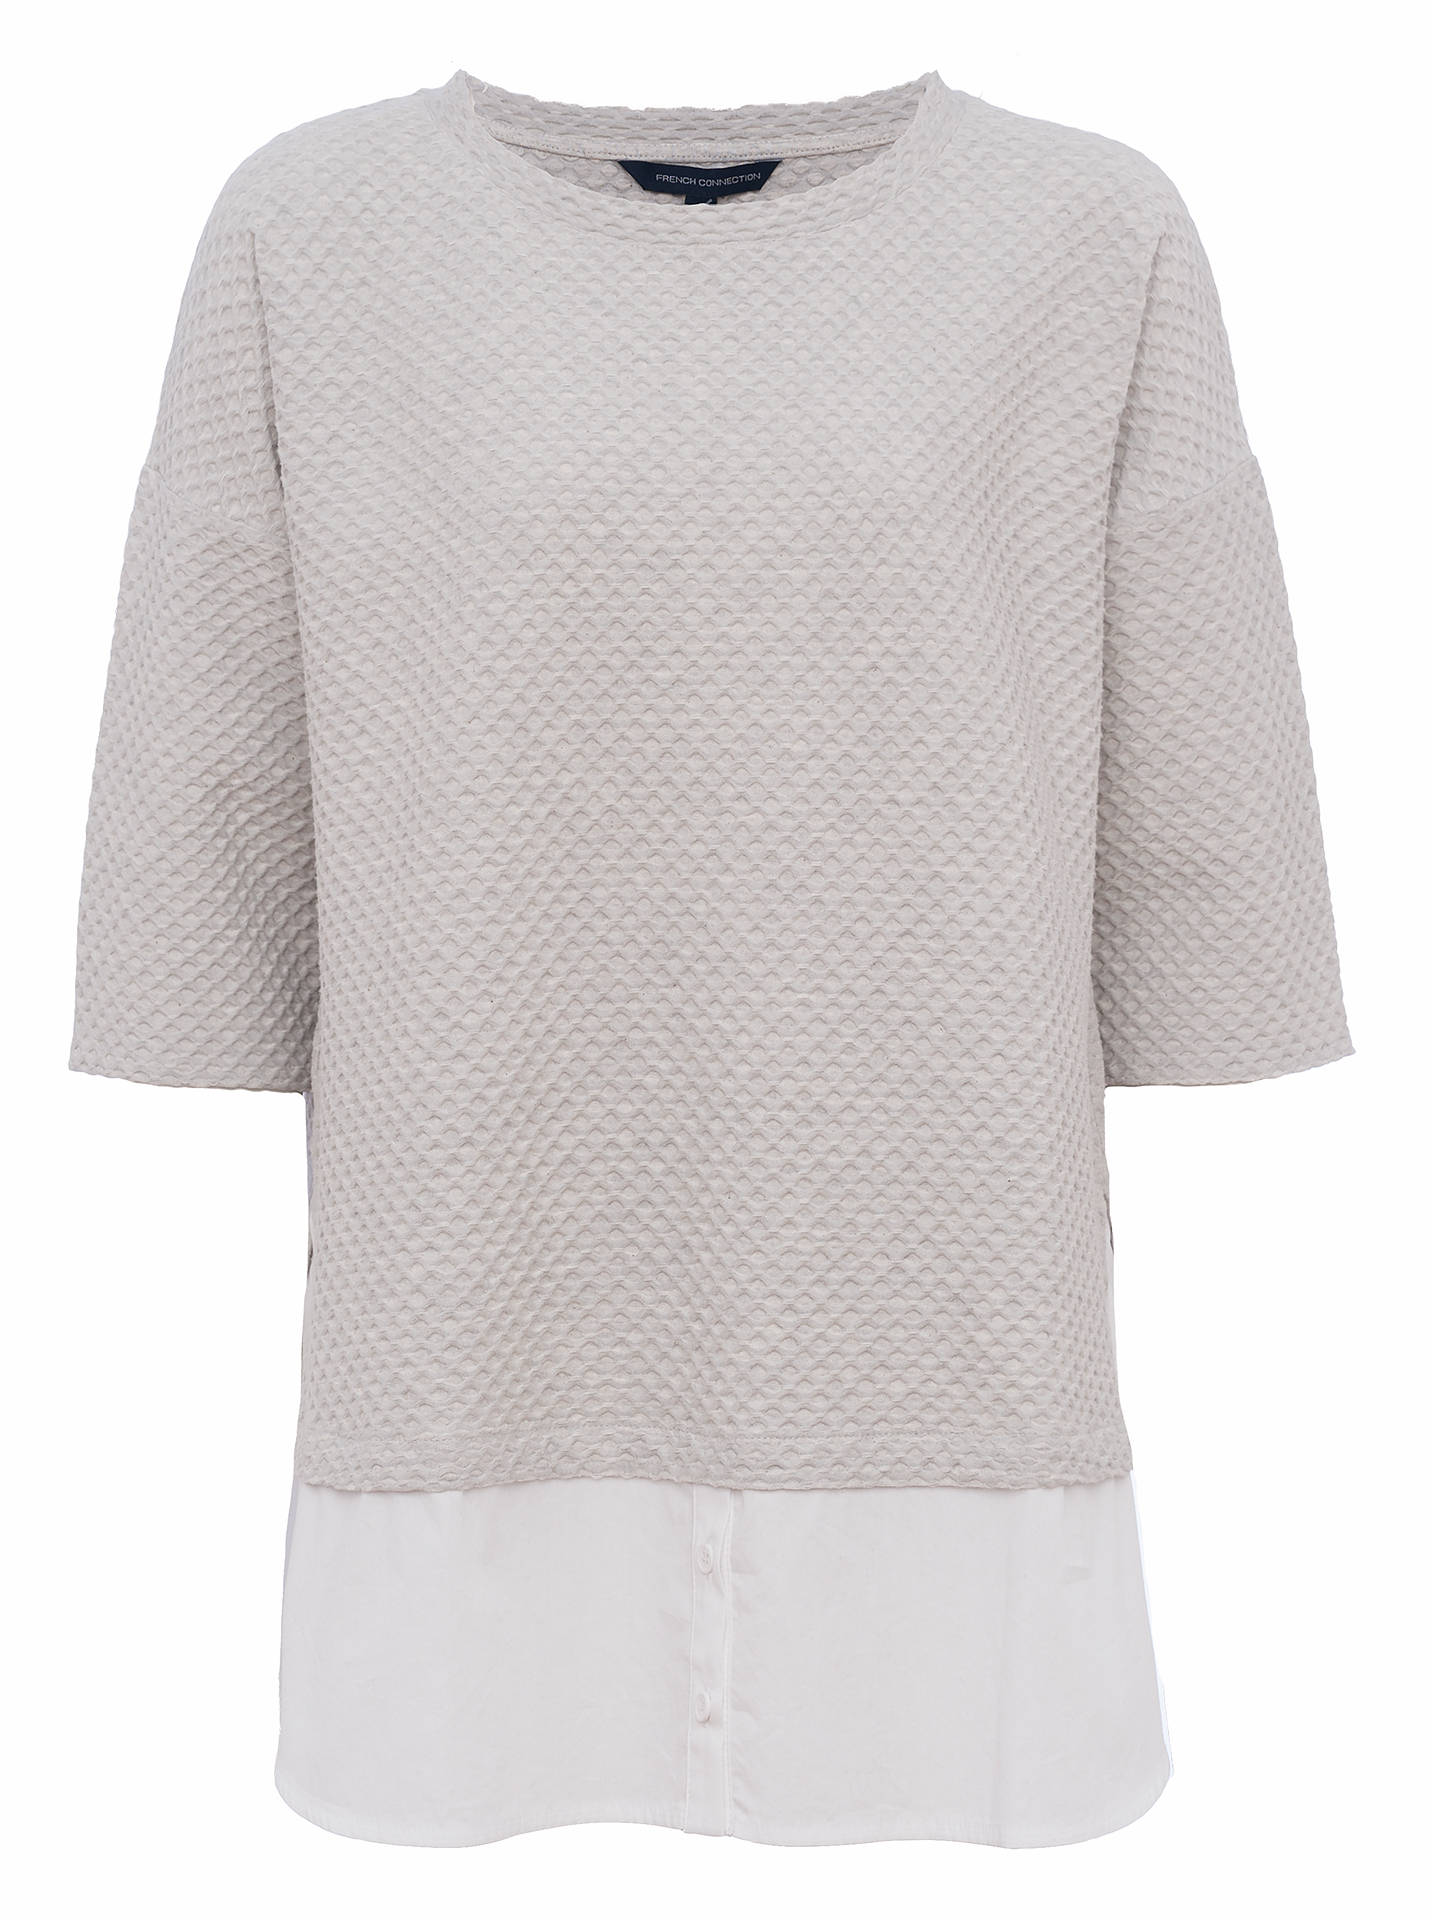 BuyFrench Connection Dixie Texture Top, Light Grey/Winter White, XS Online at johnlewis.com